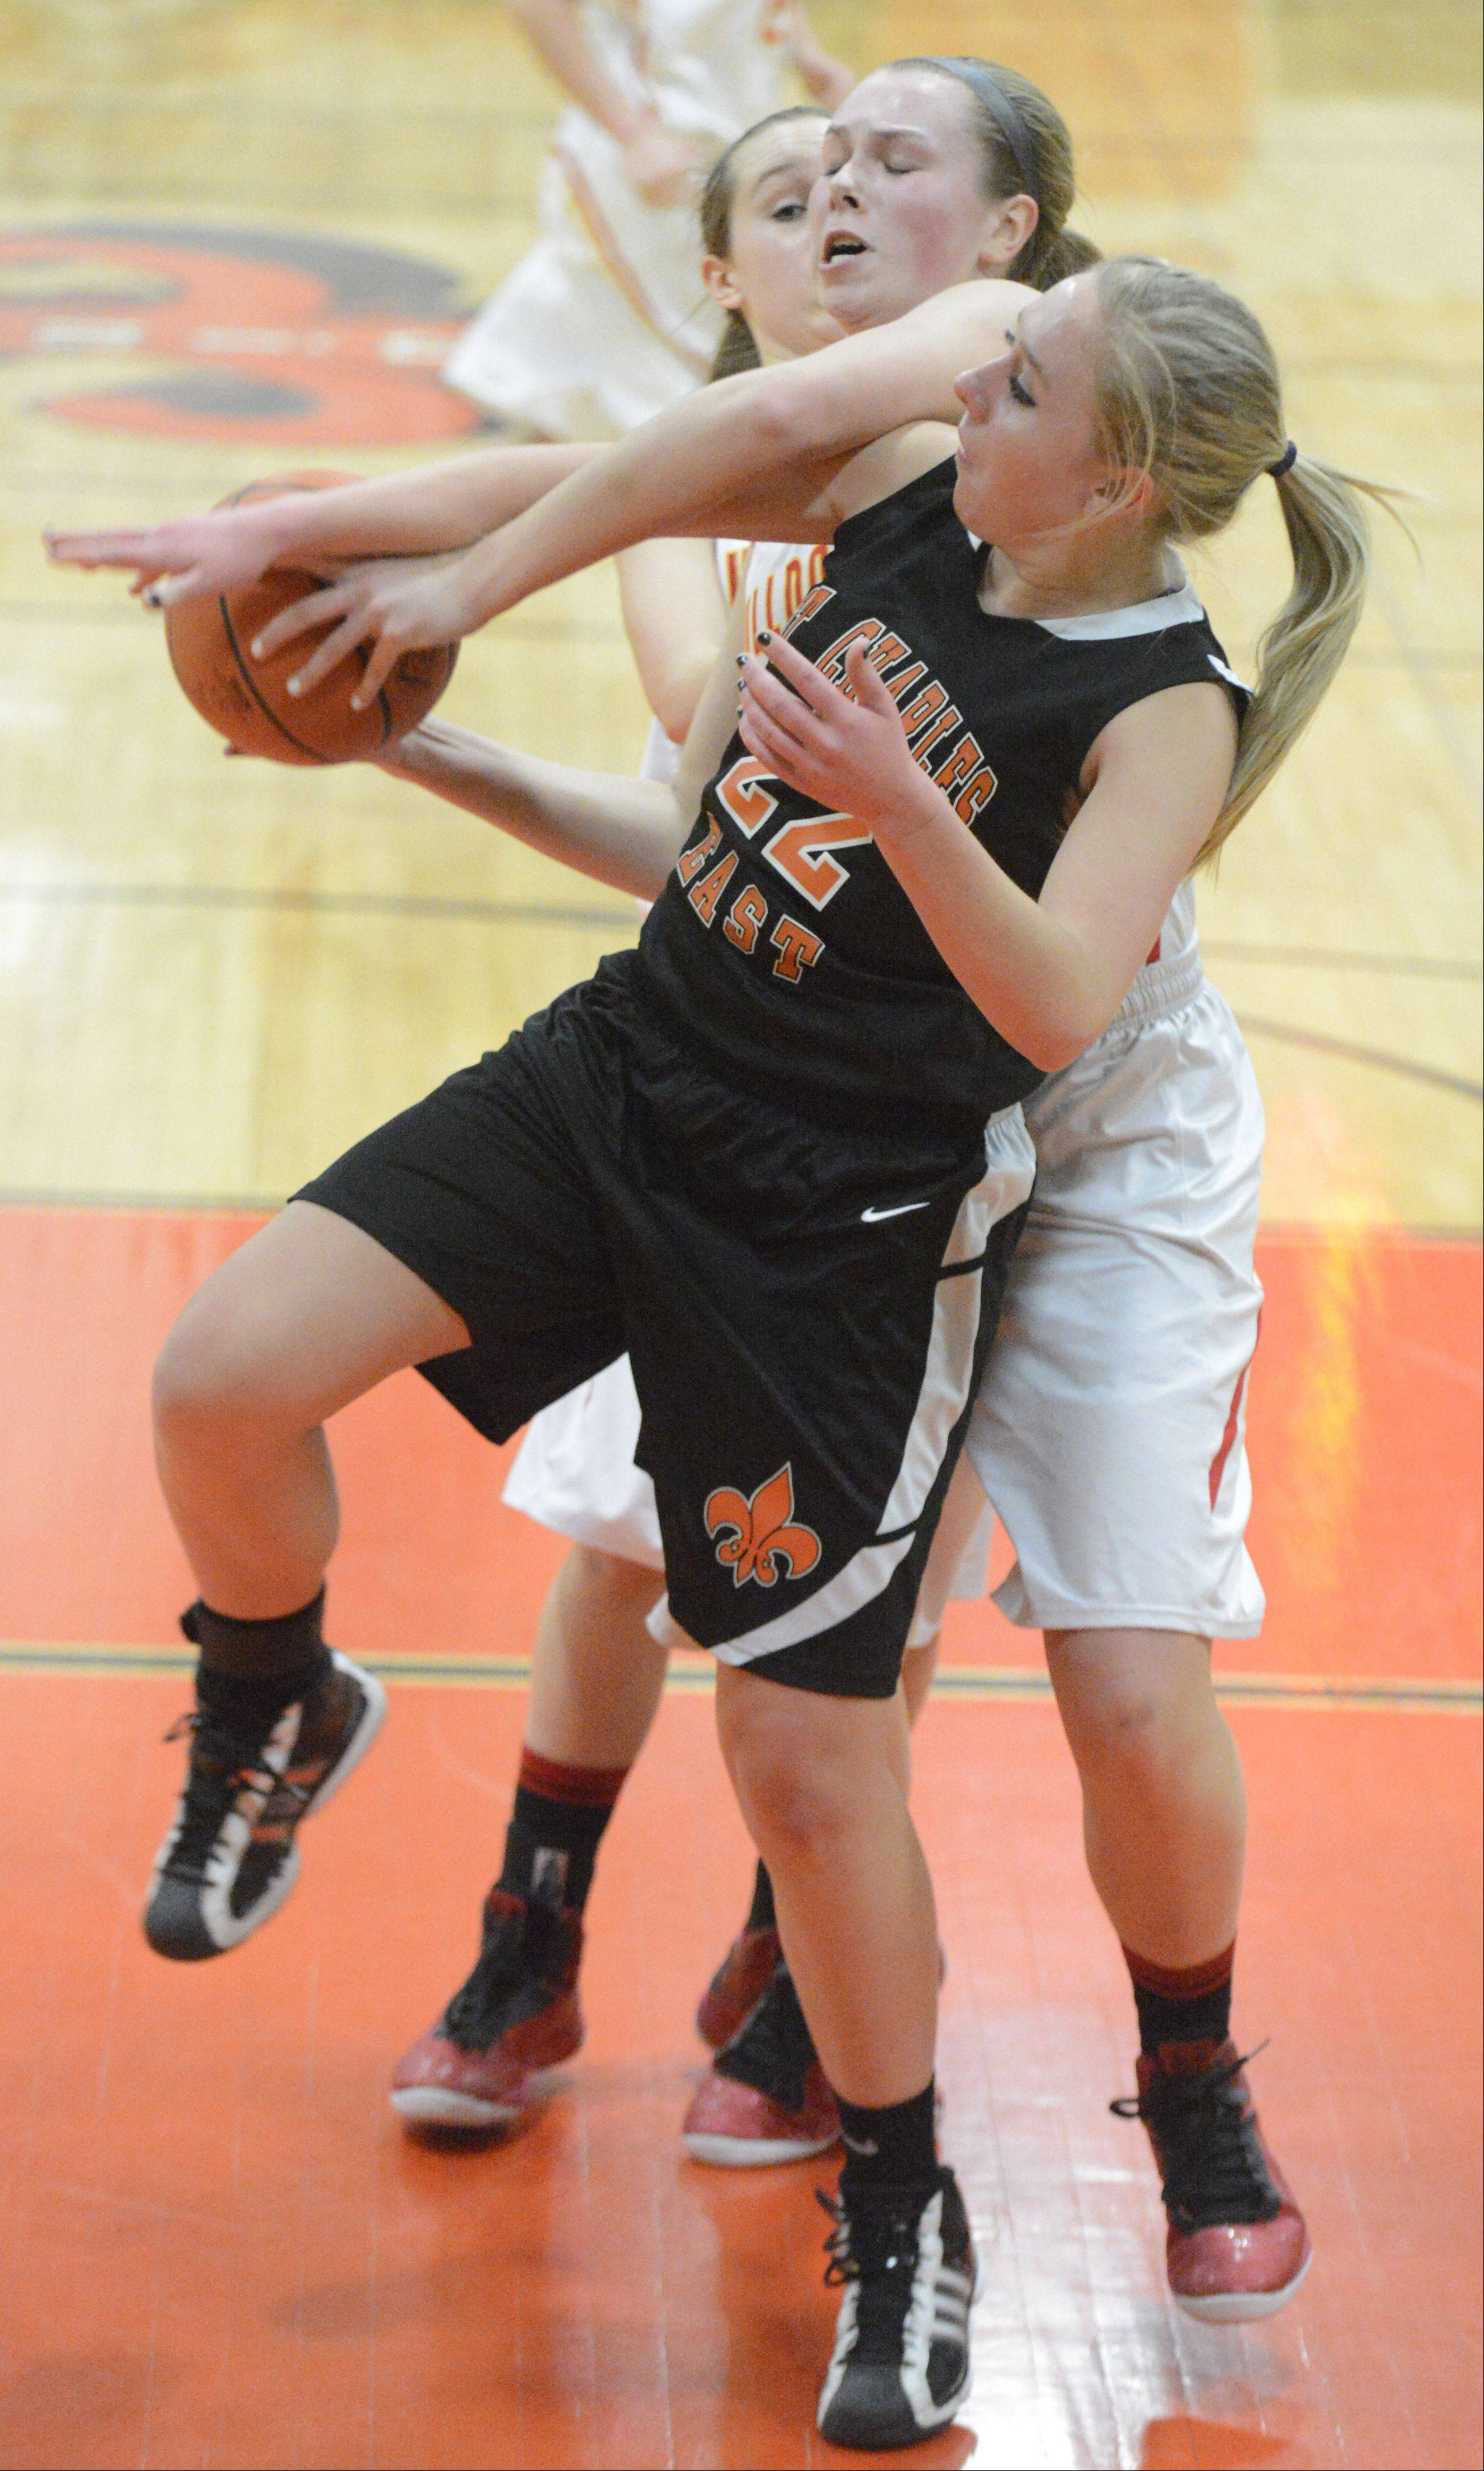 Laura Stoecker/lstoecker@dailyherald.com St. Charles East's Anna Bartels and Batavia's Erin Bayram struggle for a rebound in the second quarter of the 4A regional on Tuesday, February 12.